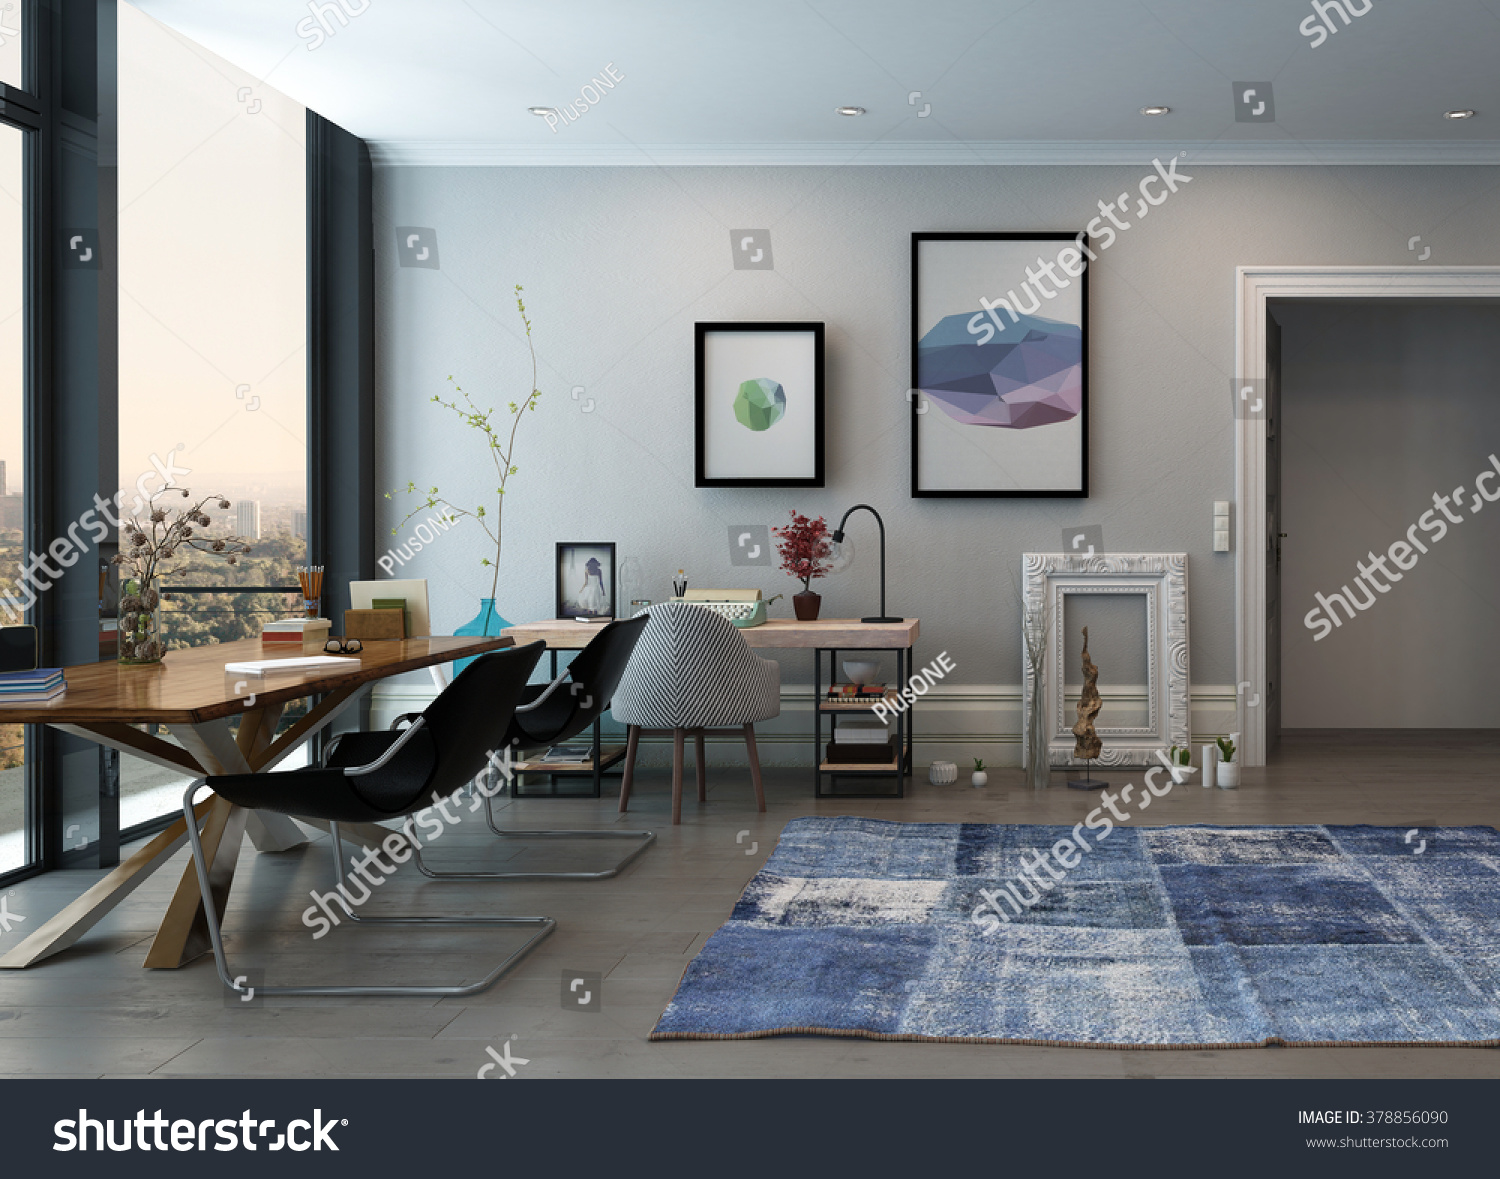 open space home office. open space home office concept with eclectic furnishings in modern high r